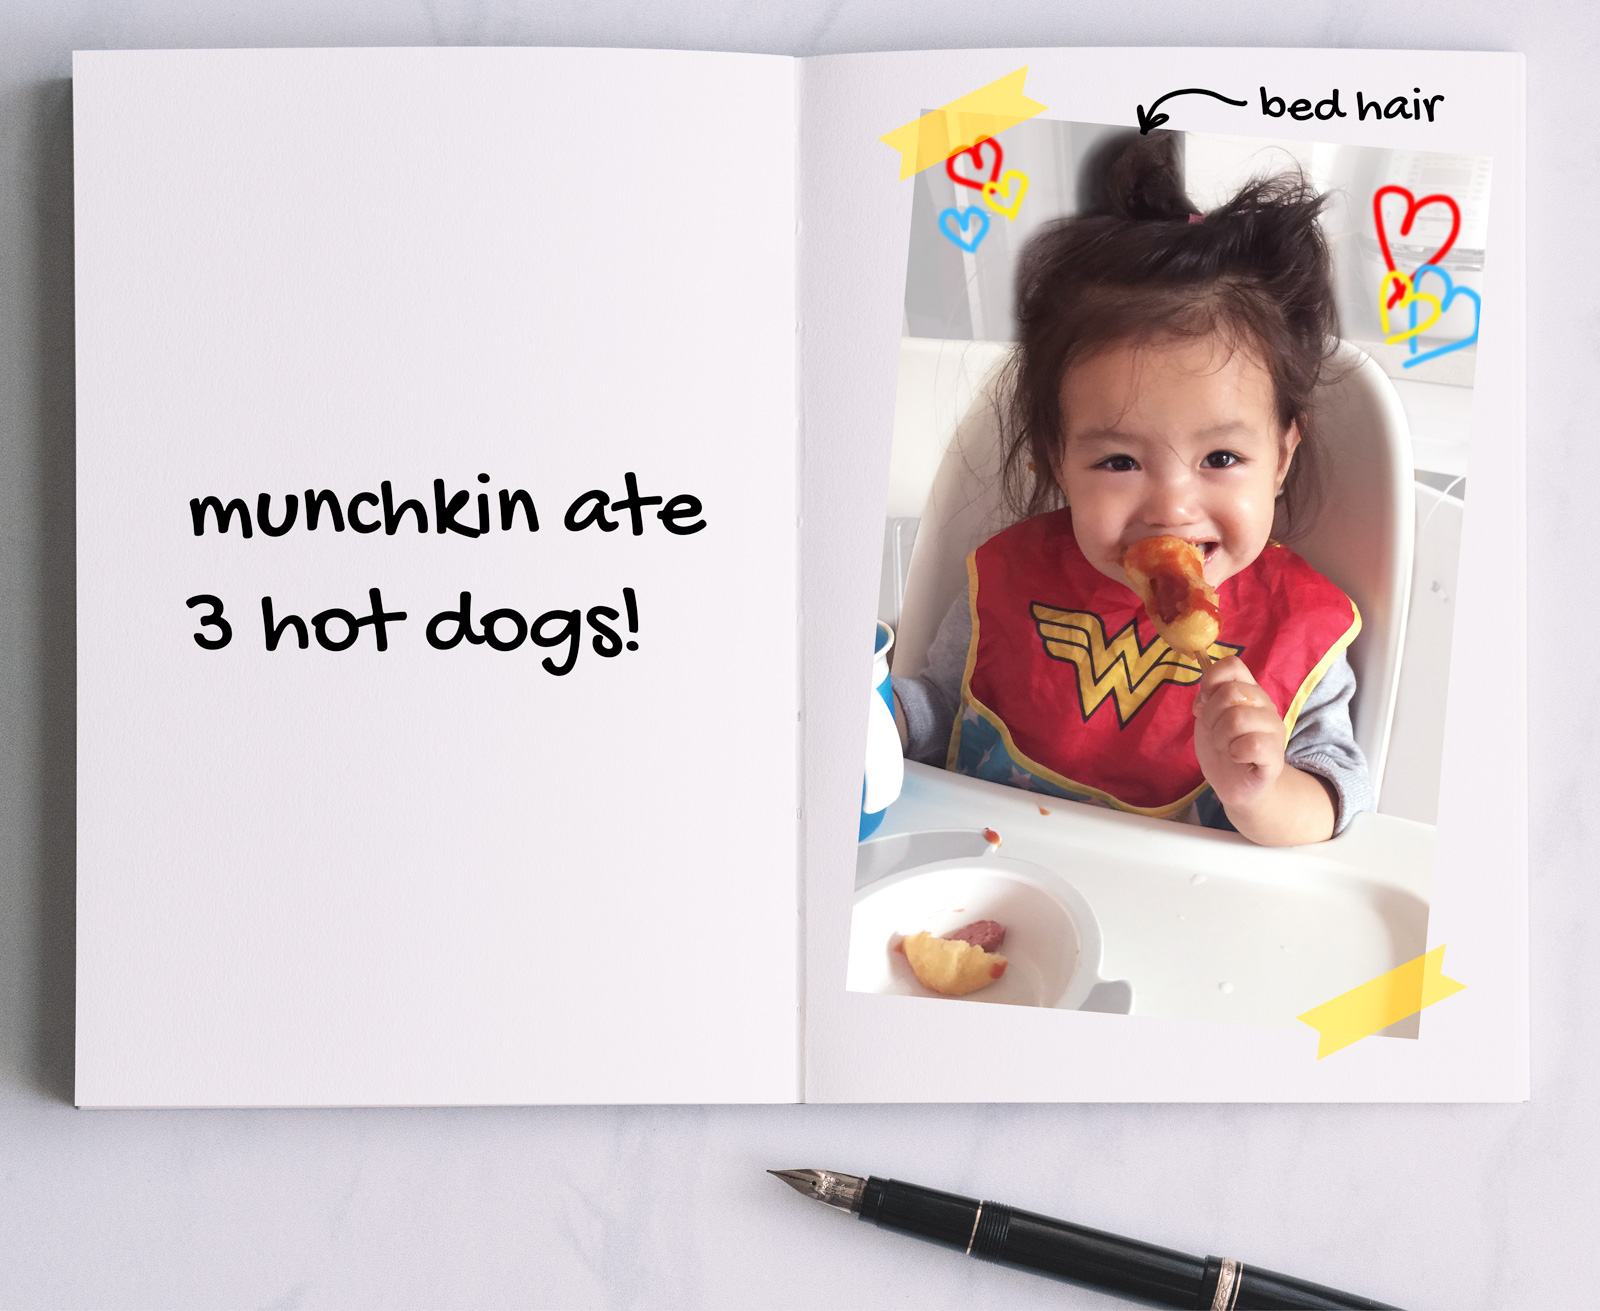 munchkin eating hot dog